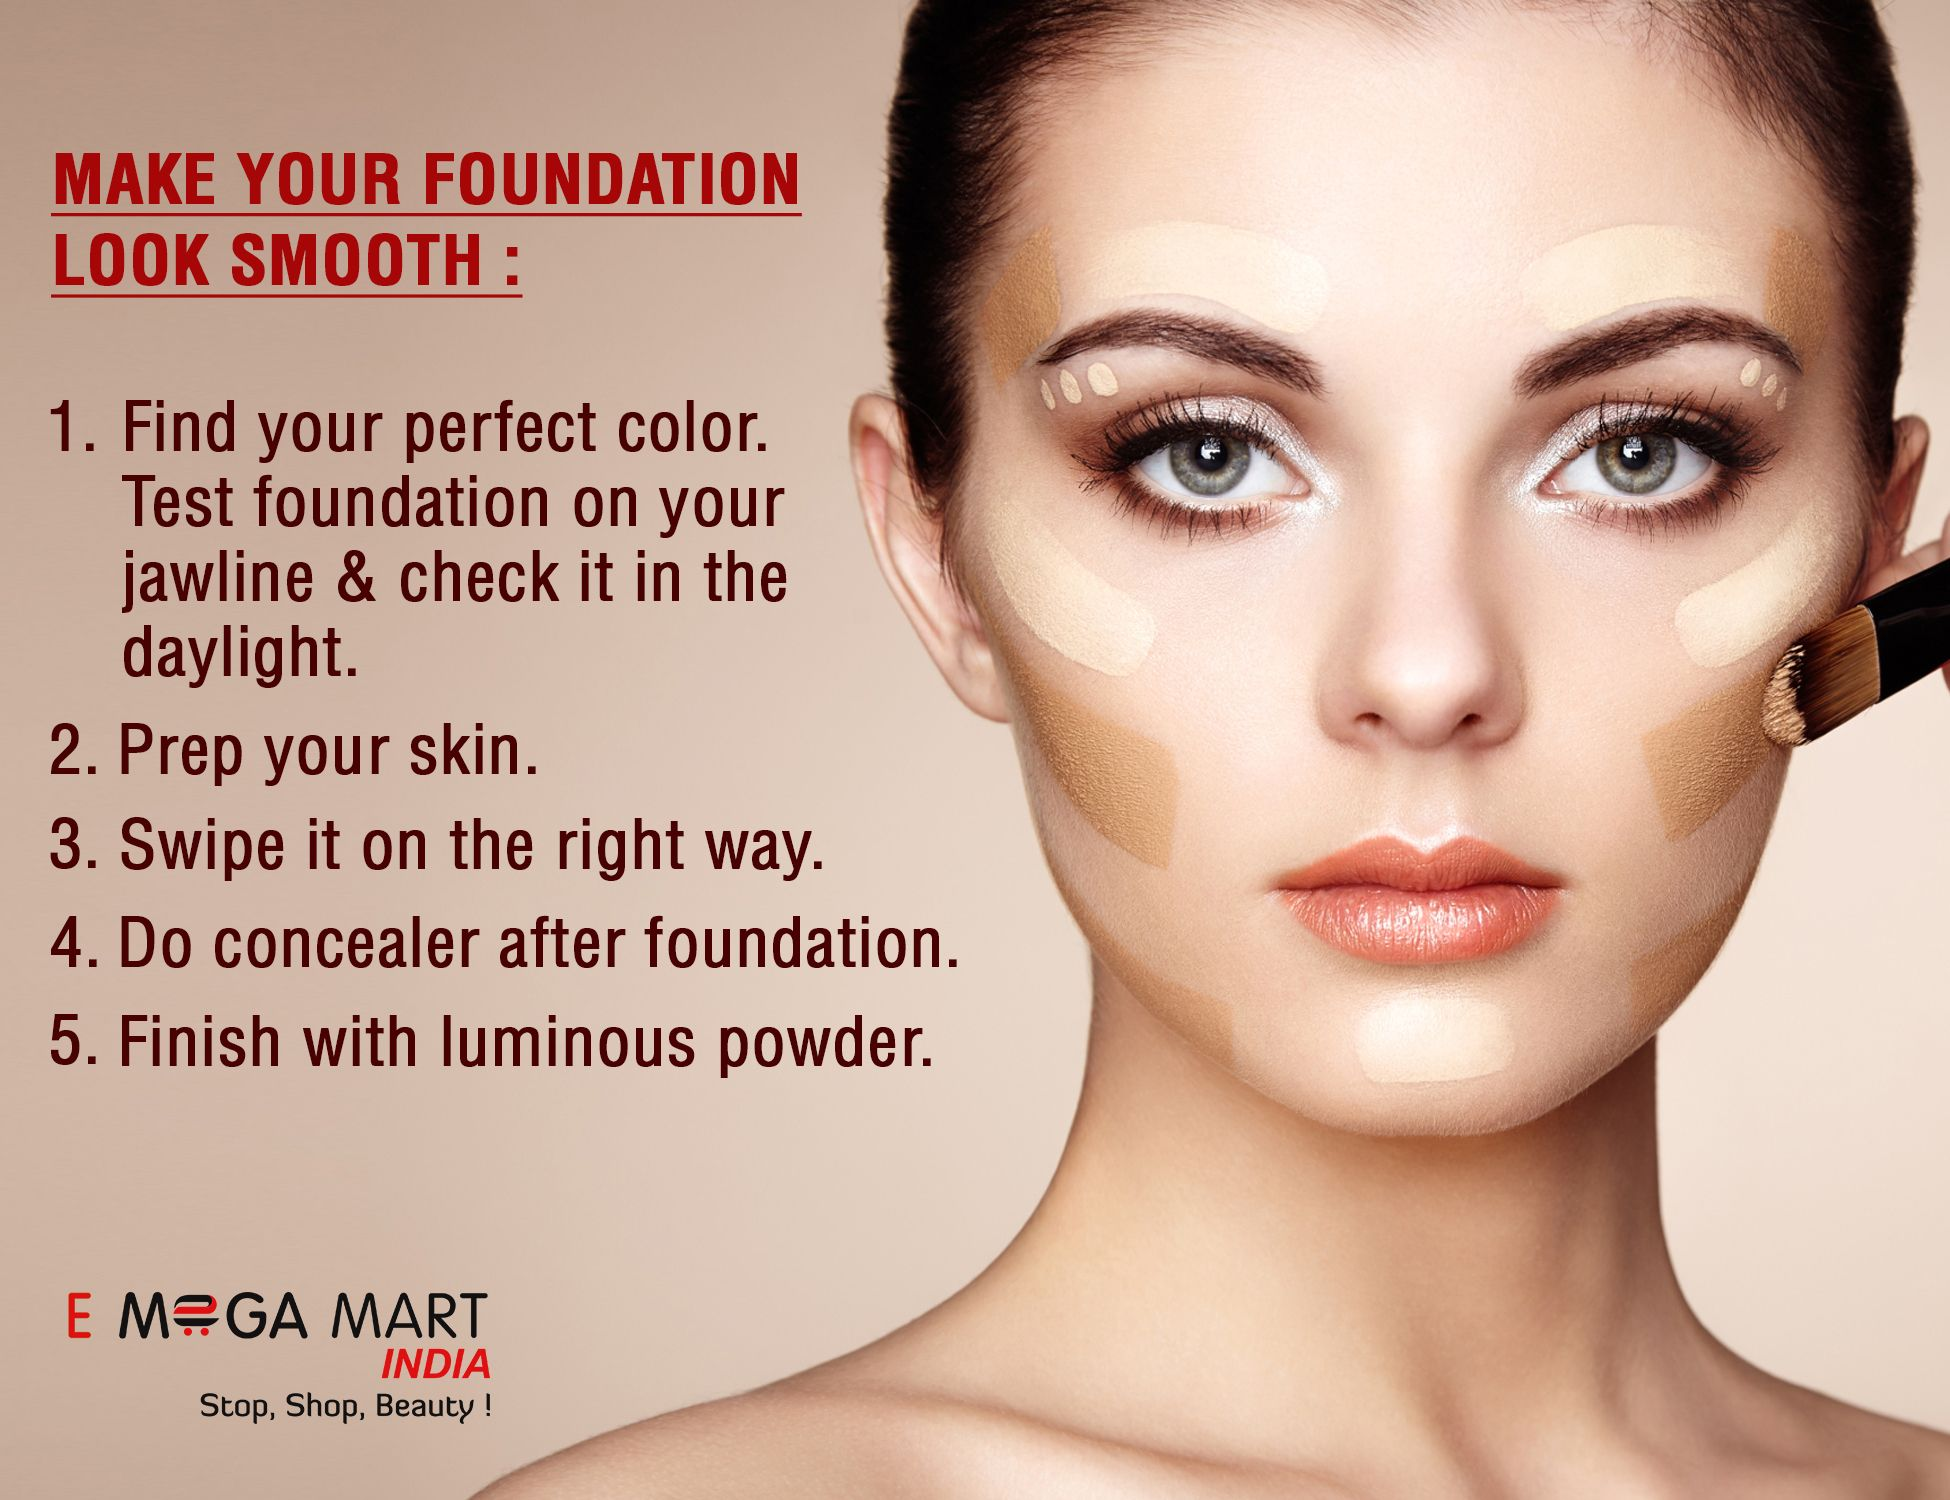 Make Your Foundation Look Smooth Here Are Few Steps Mentions Which Can Help You To Look More Beautiful We H Makeup Store Makeup Goals Makeup Tutorial